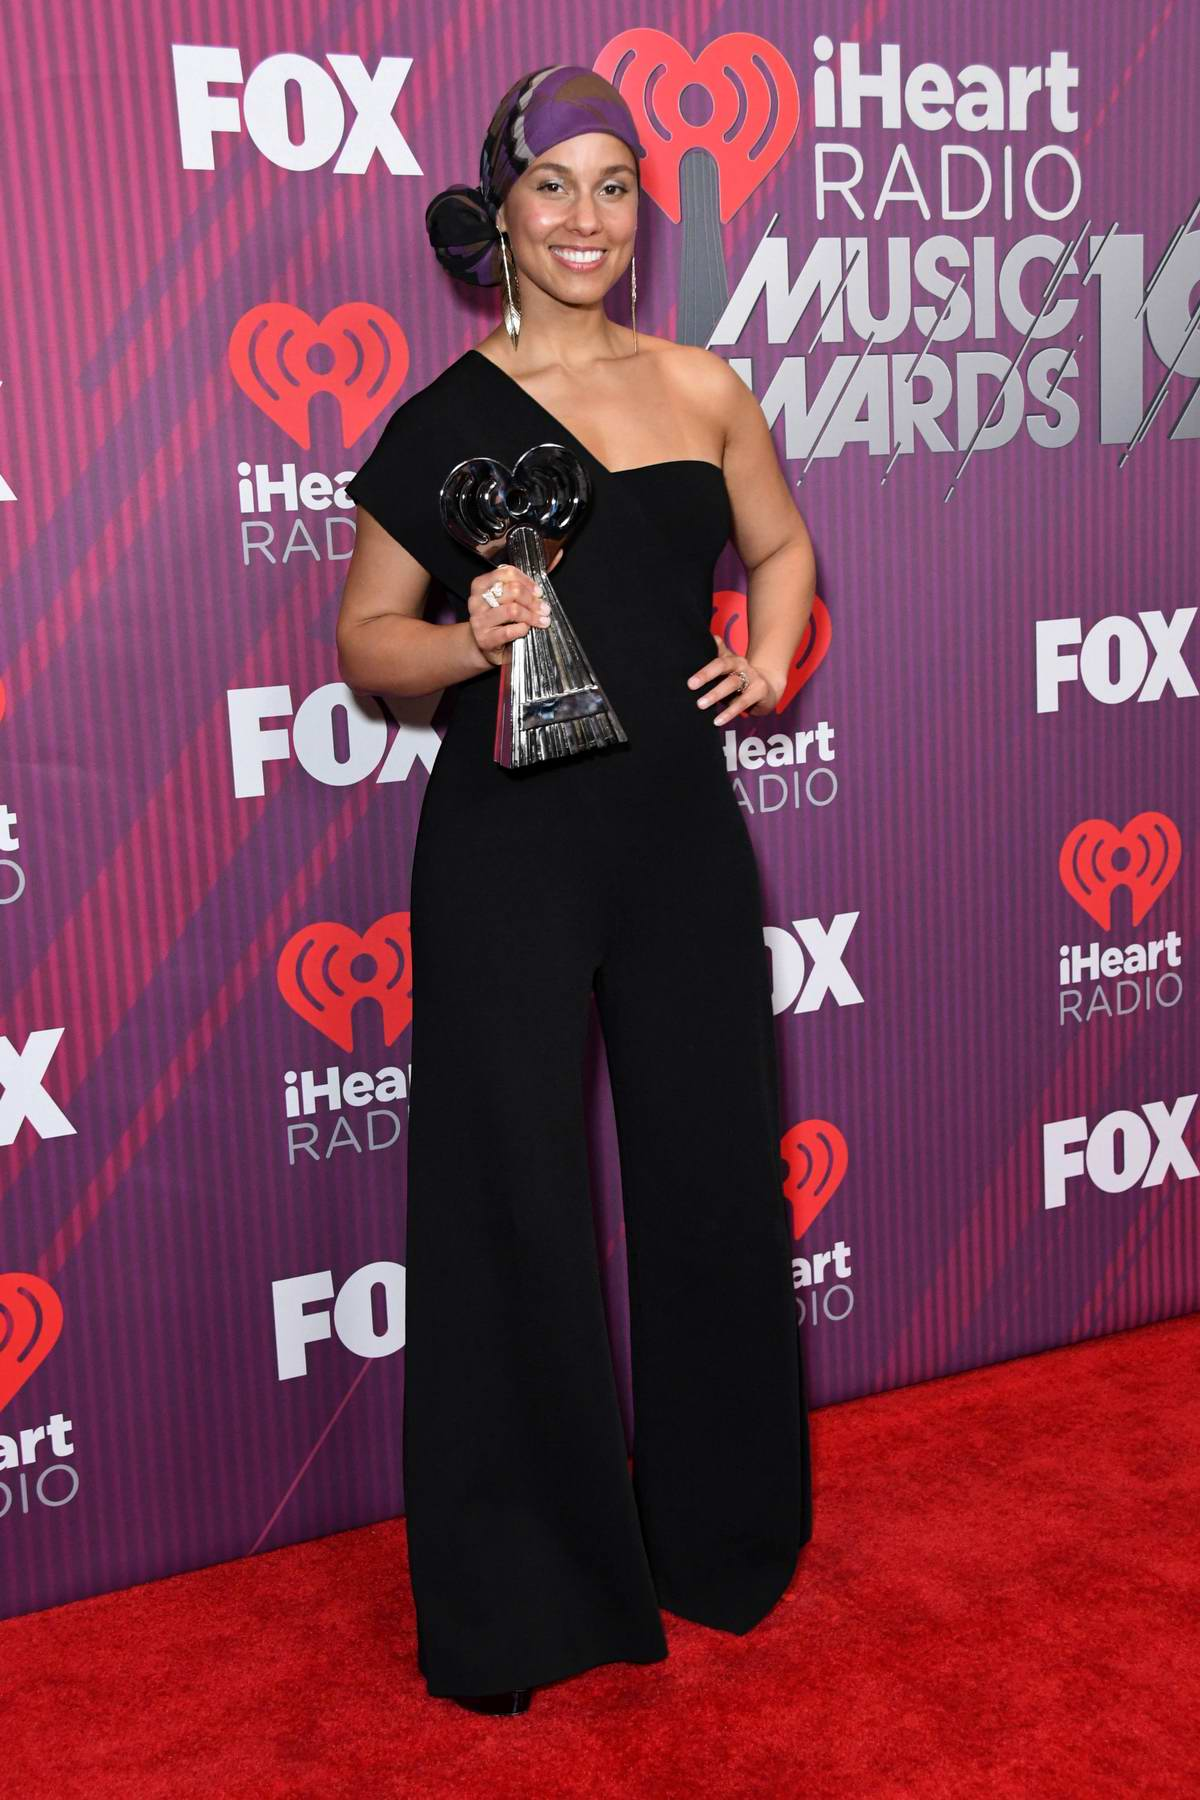 Alicia Keys attends the 2019 iHeartRadio Music Awards at Microsoft Theater in Los Angeles